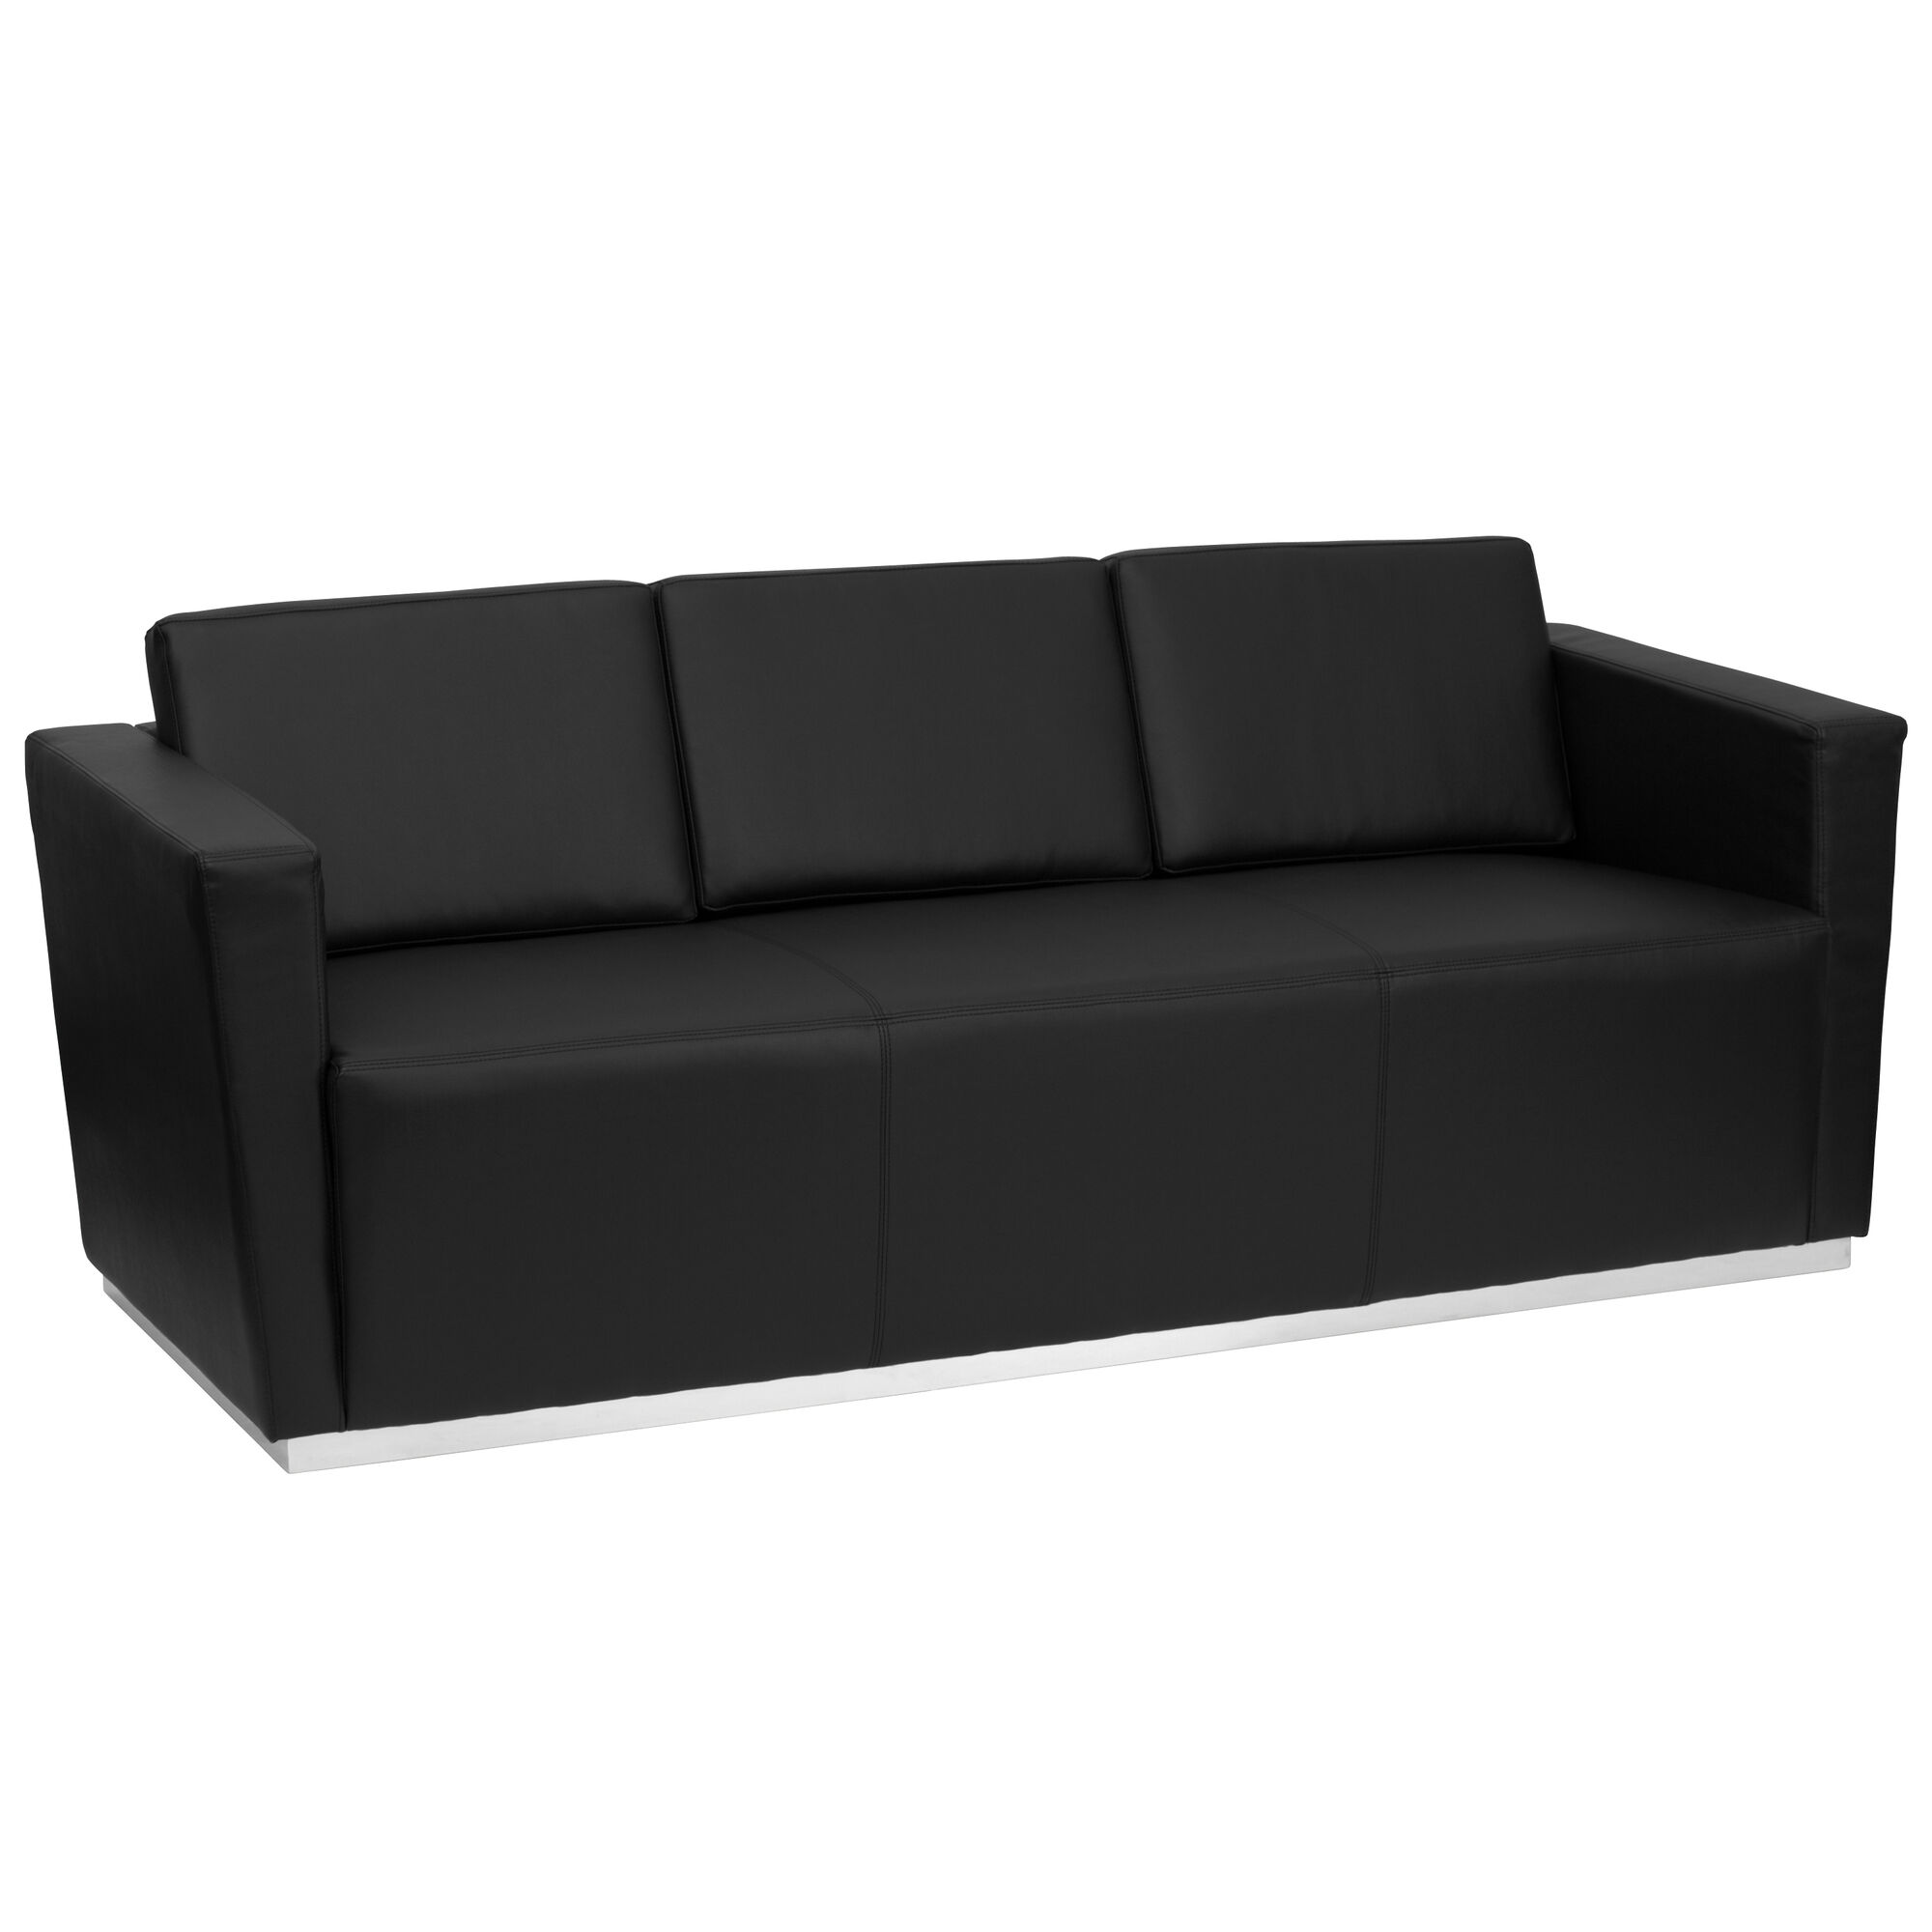 Black leather sofa zb trinity 8094 sofa bk gg for Contemporary black leather chairs